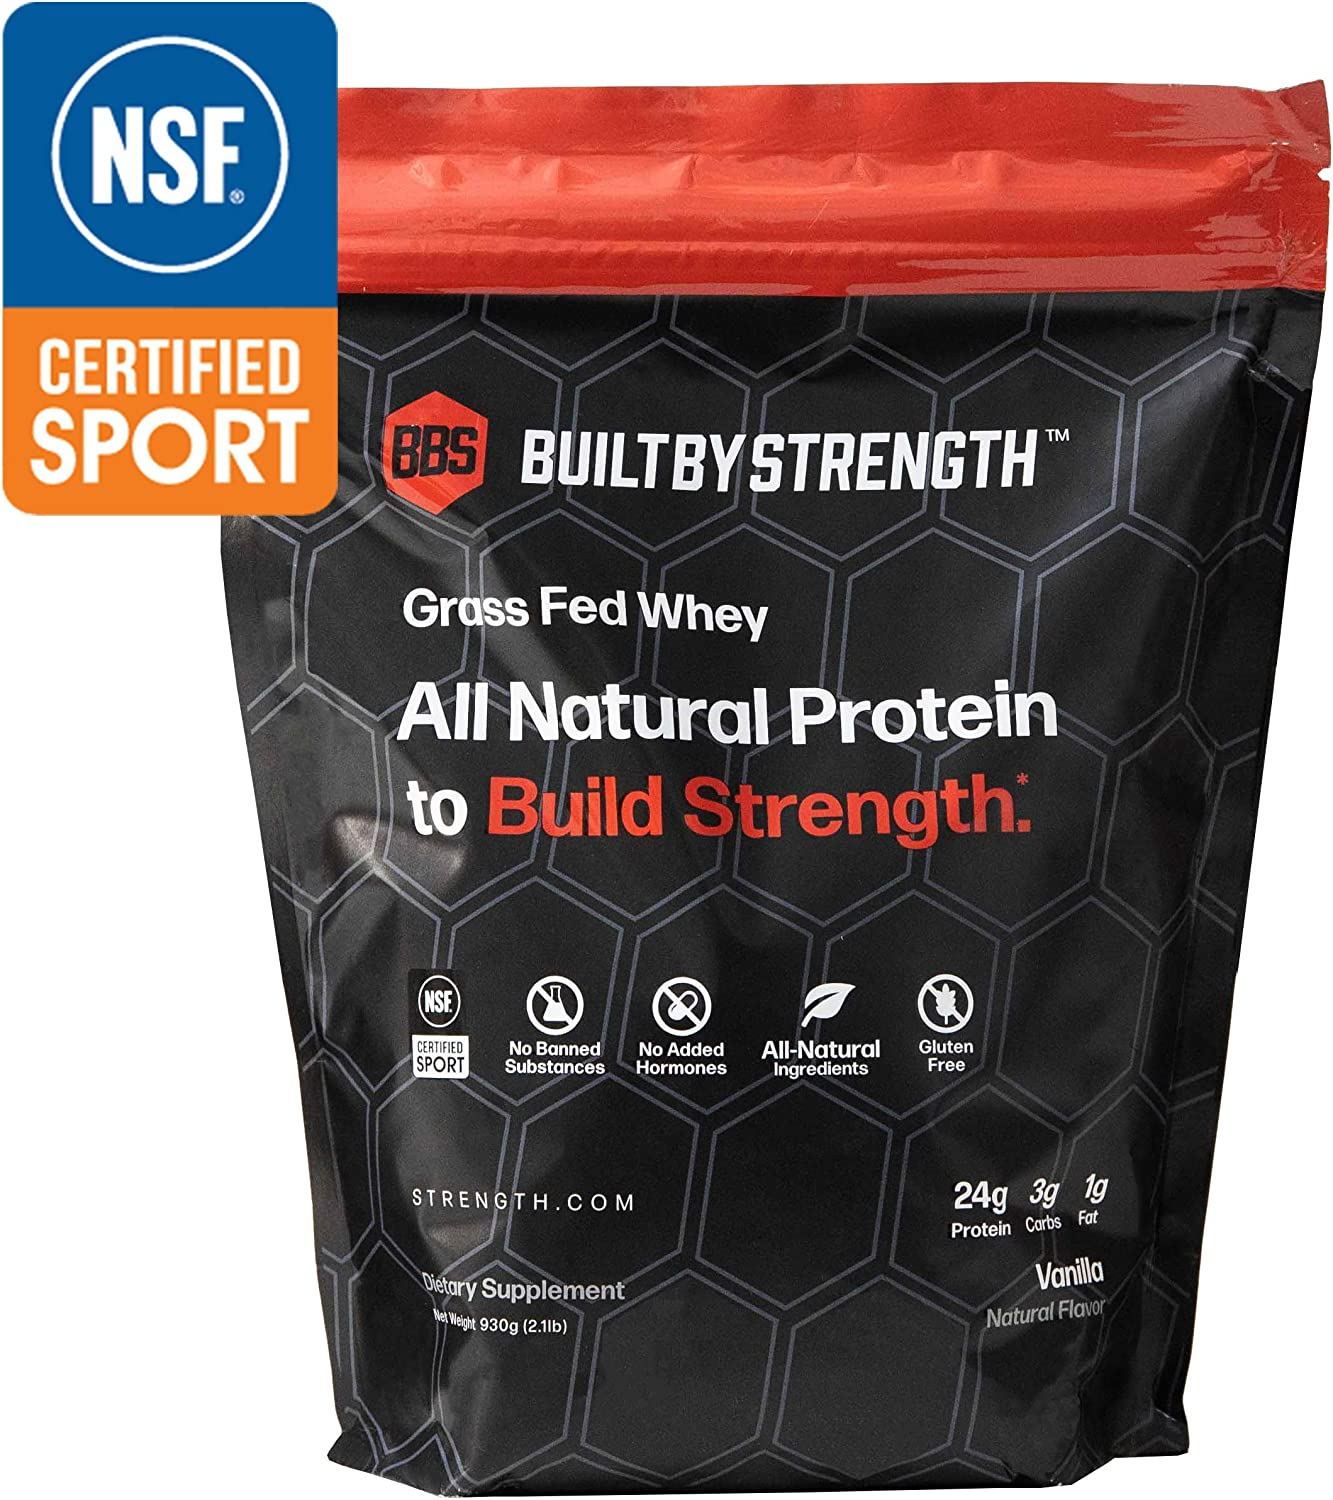 BuiltByStrength Grass Fed Whey Protein – NSF Certified All Natural Vanilla Whey Isolate Protein Powder – Tastes Great and Dissolves Easily in Coffee – Non GMO and Gluten Free 30 Servings